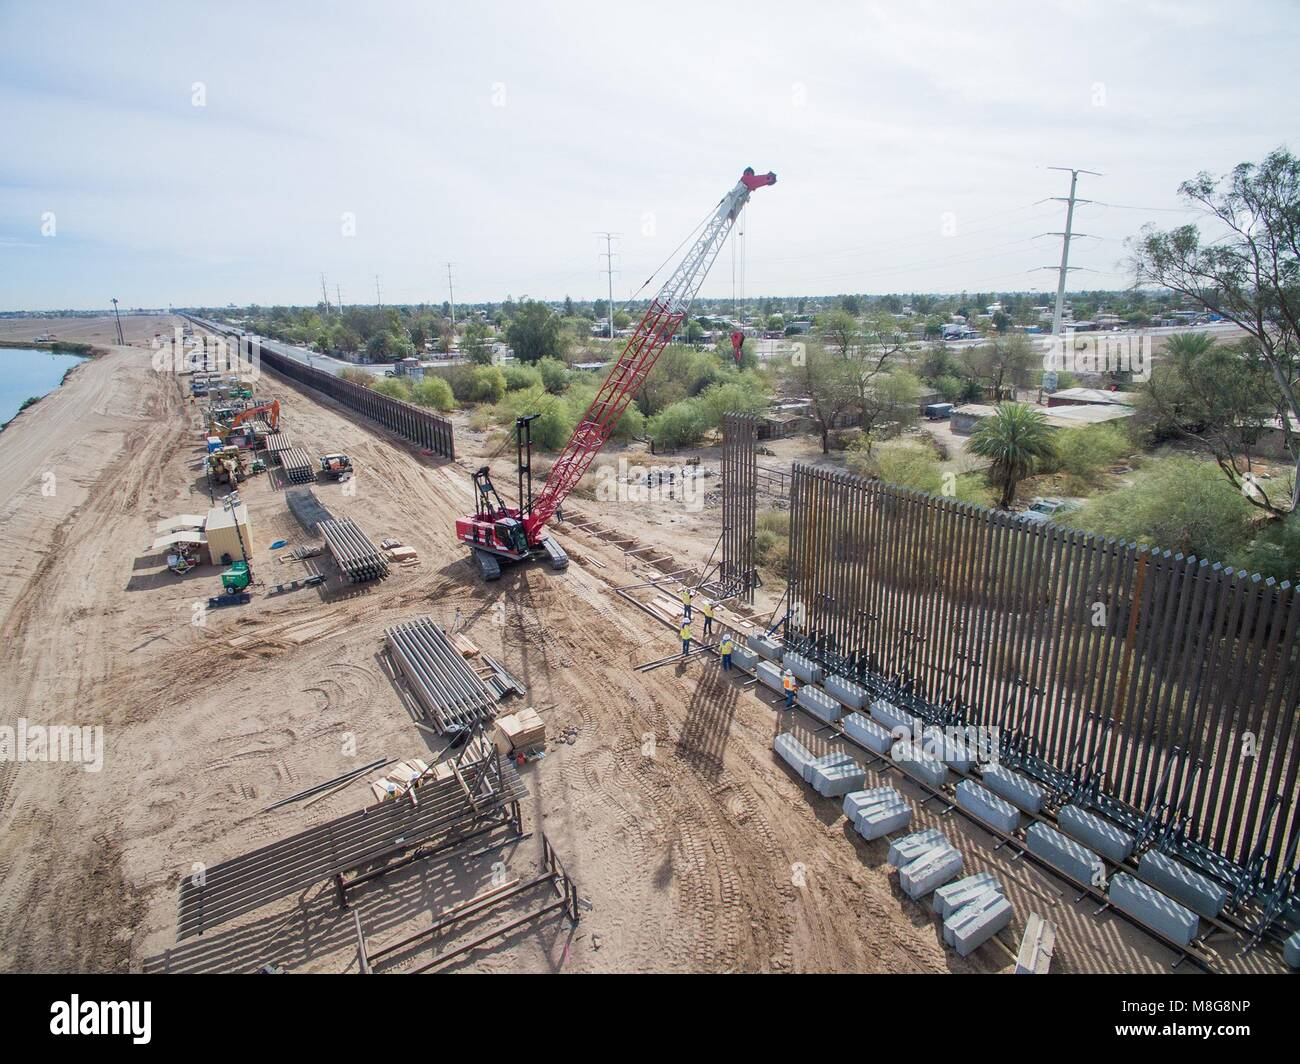 The El Centro sector of the border wall with Mexico is replaced as part of a scheduled renovation March 13, 2018 - Stock Image